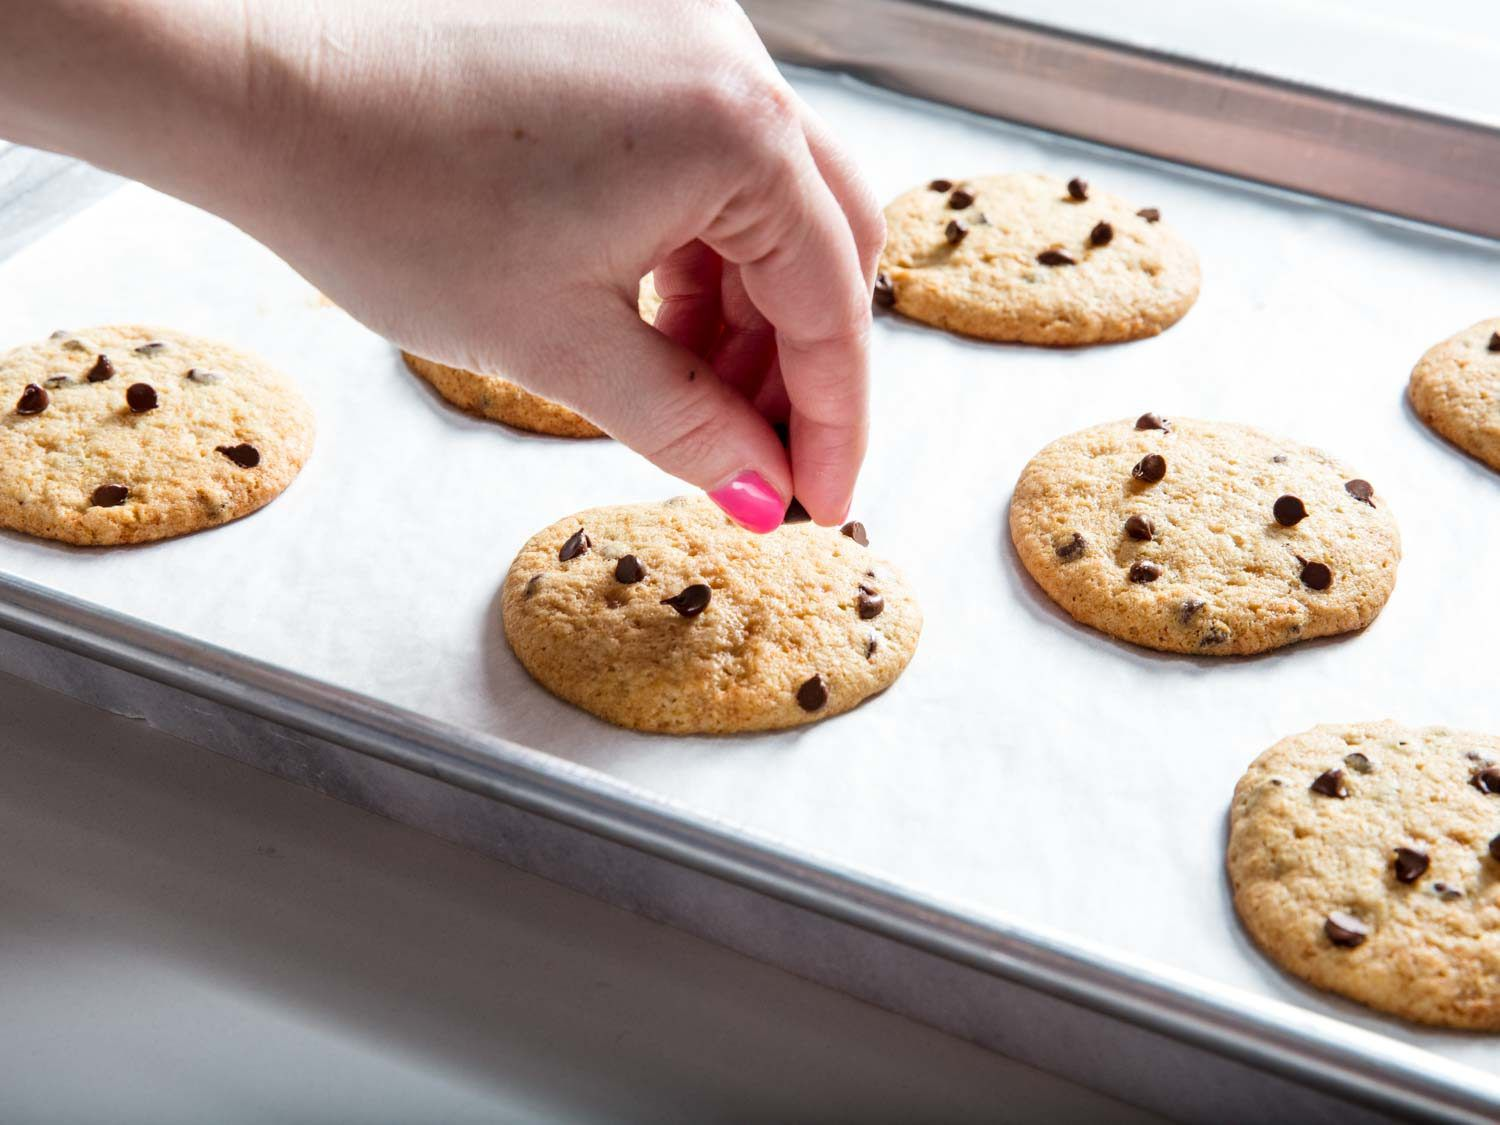 Adding extra chocolate chips to the warm cookies